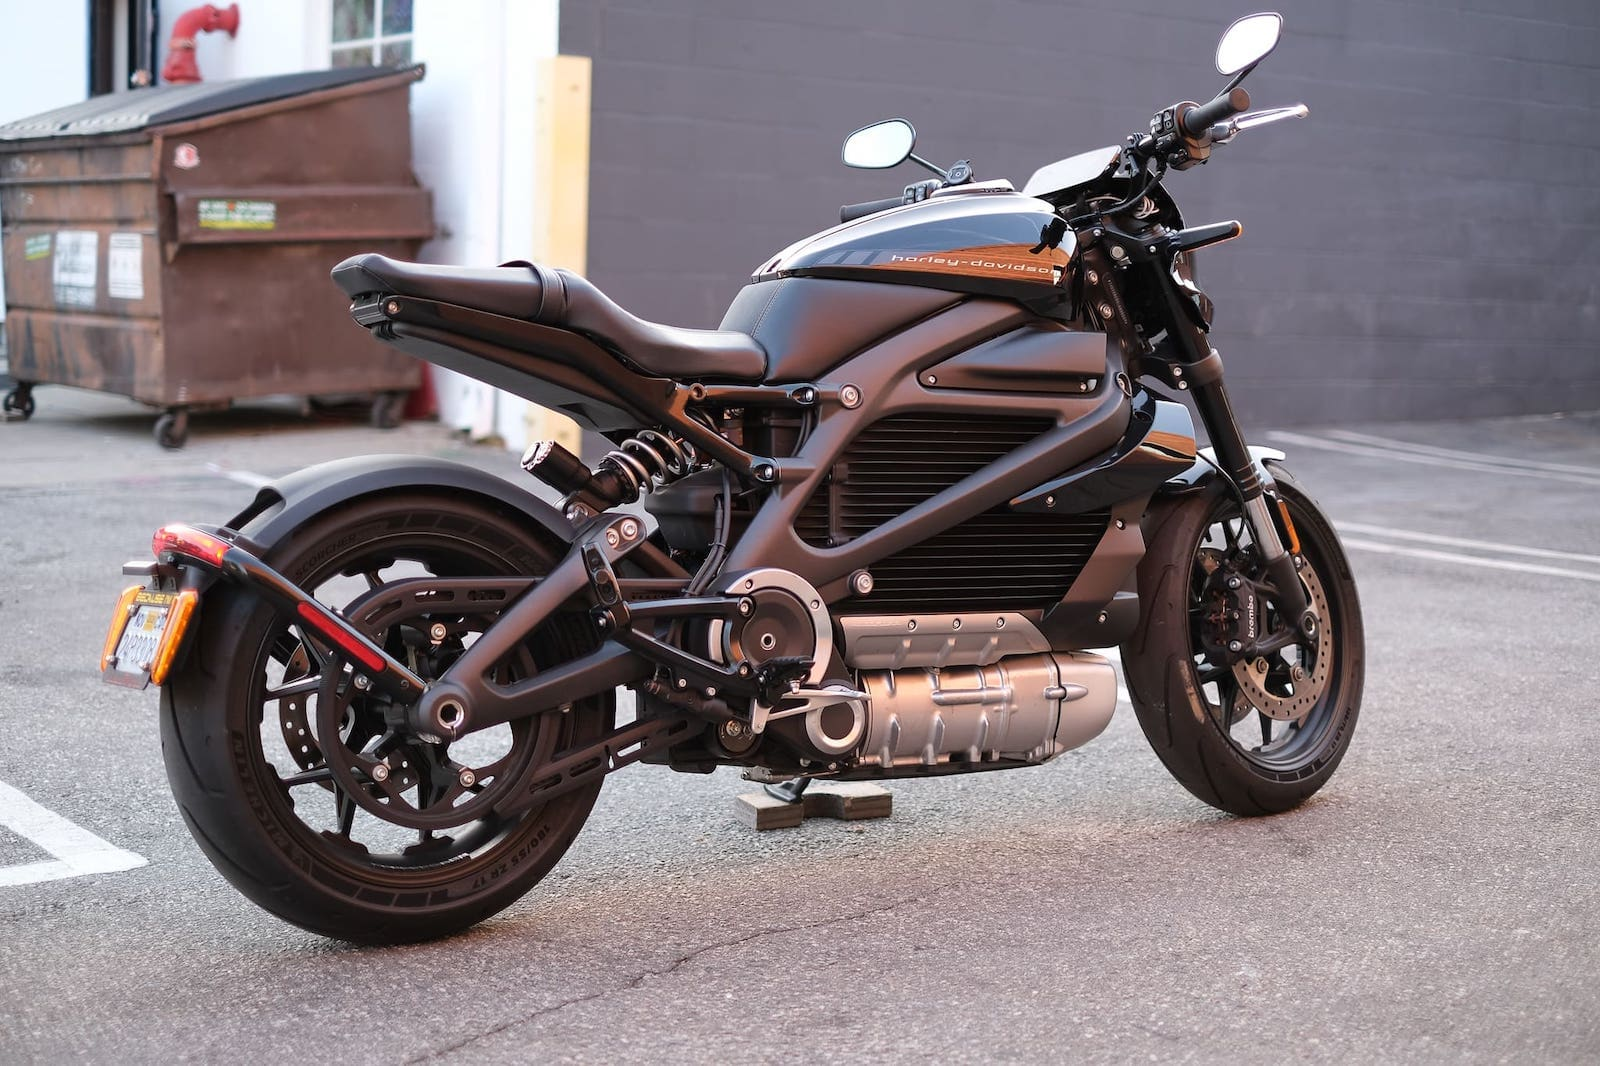 The Harley Davidson LiveWire - a review by an ordinary rider.